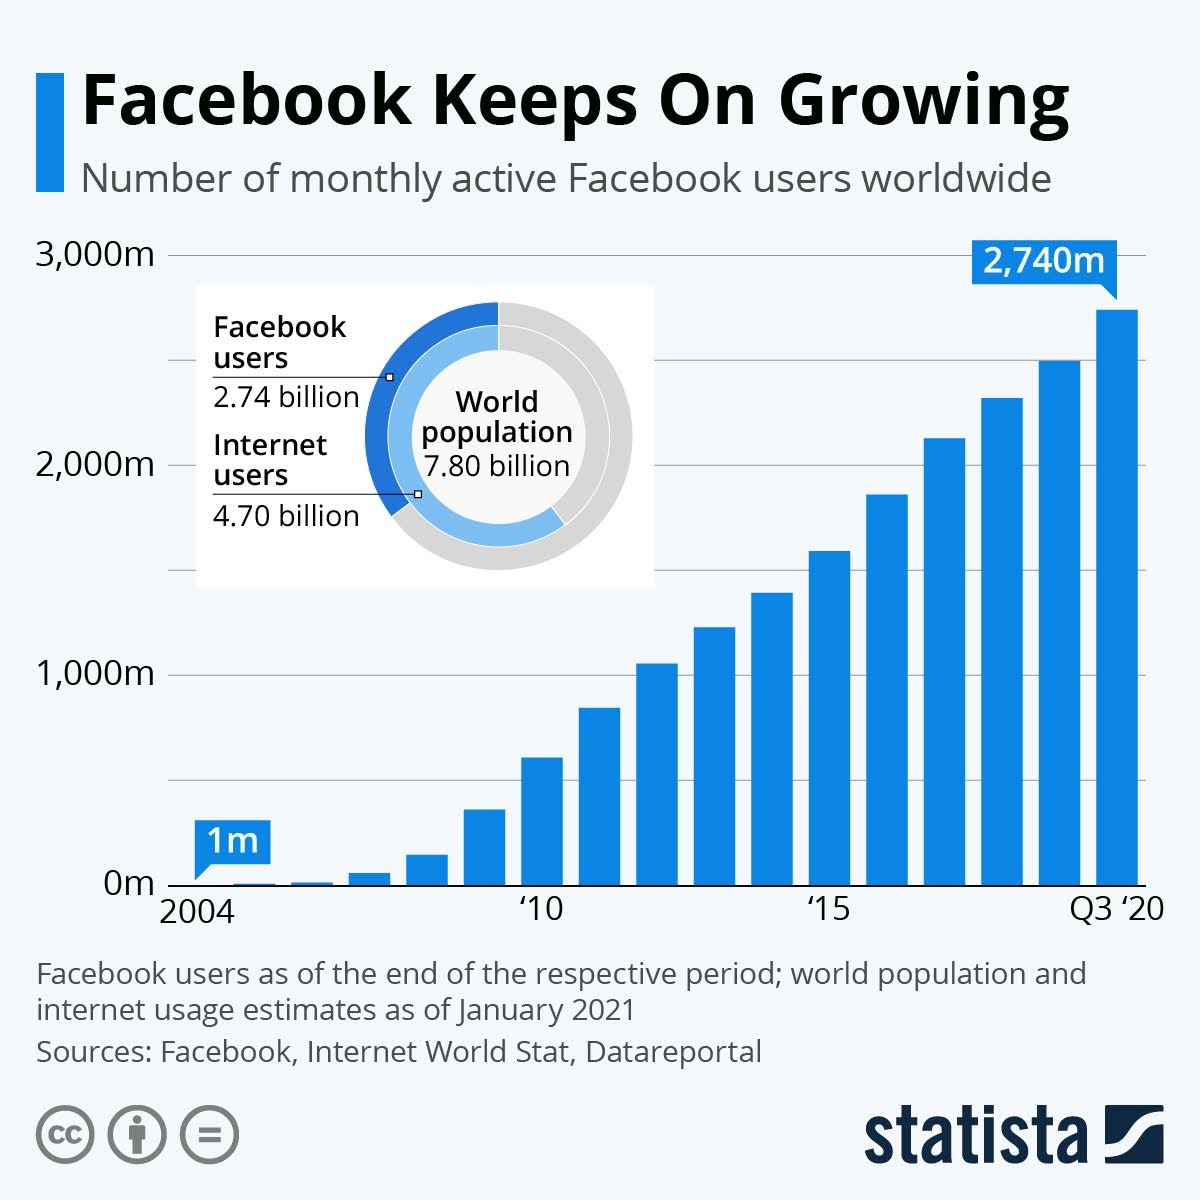 facebook-keeps-on-growing-infographic